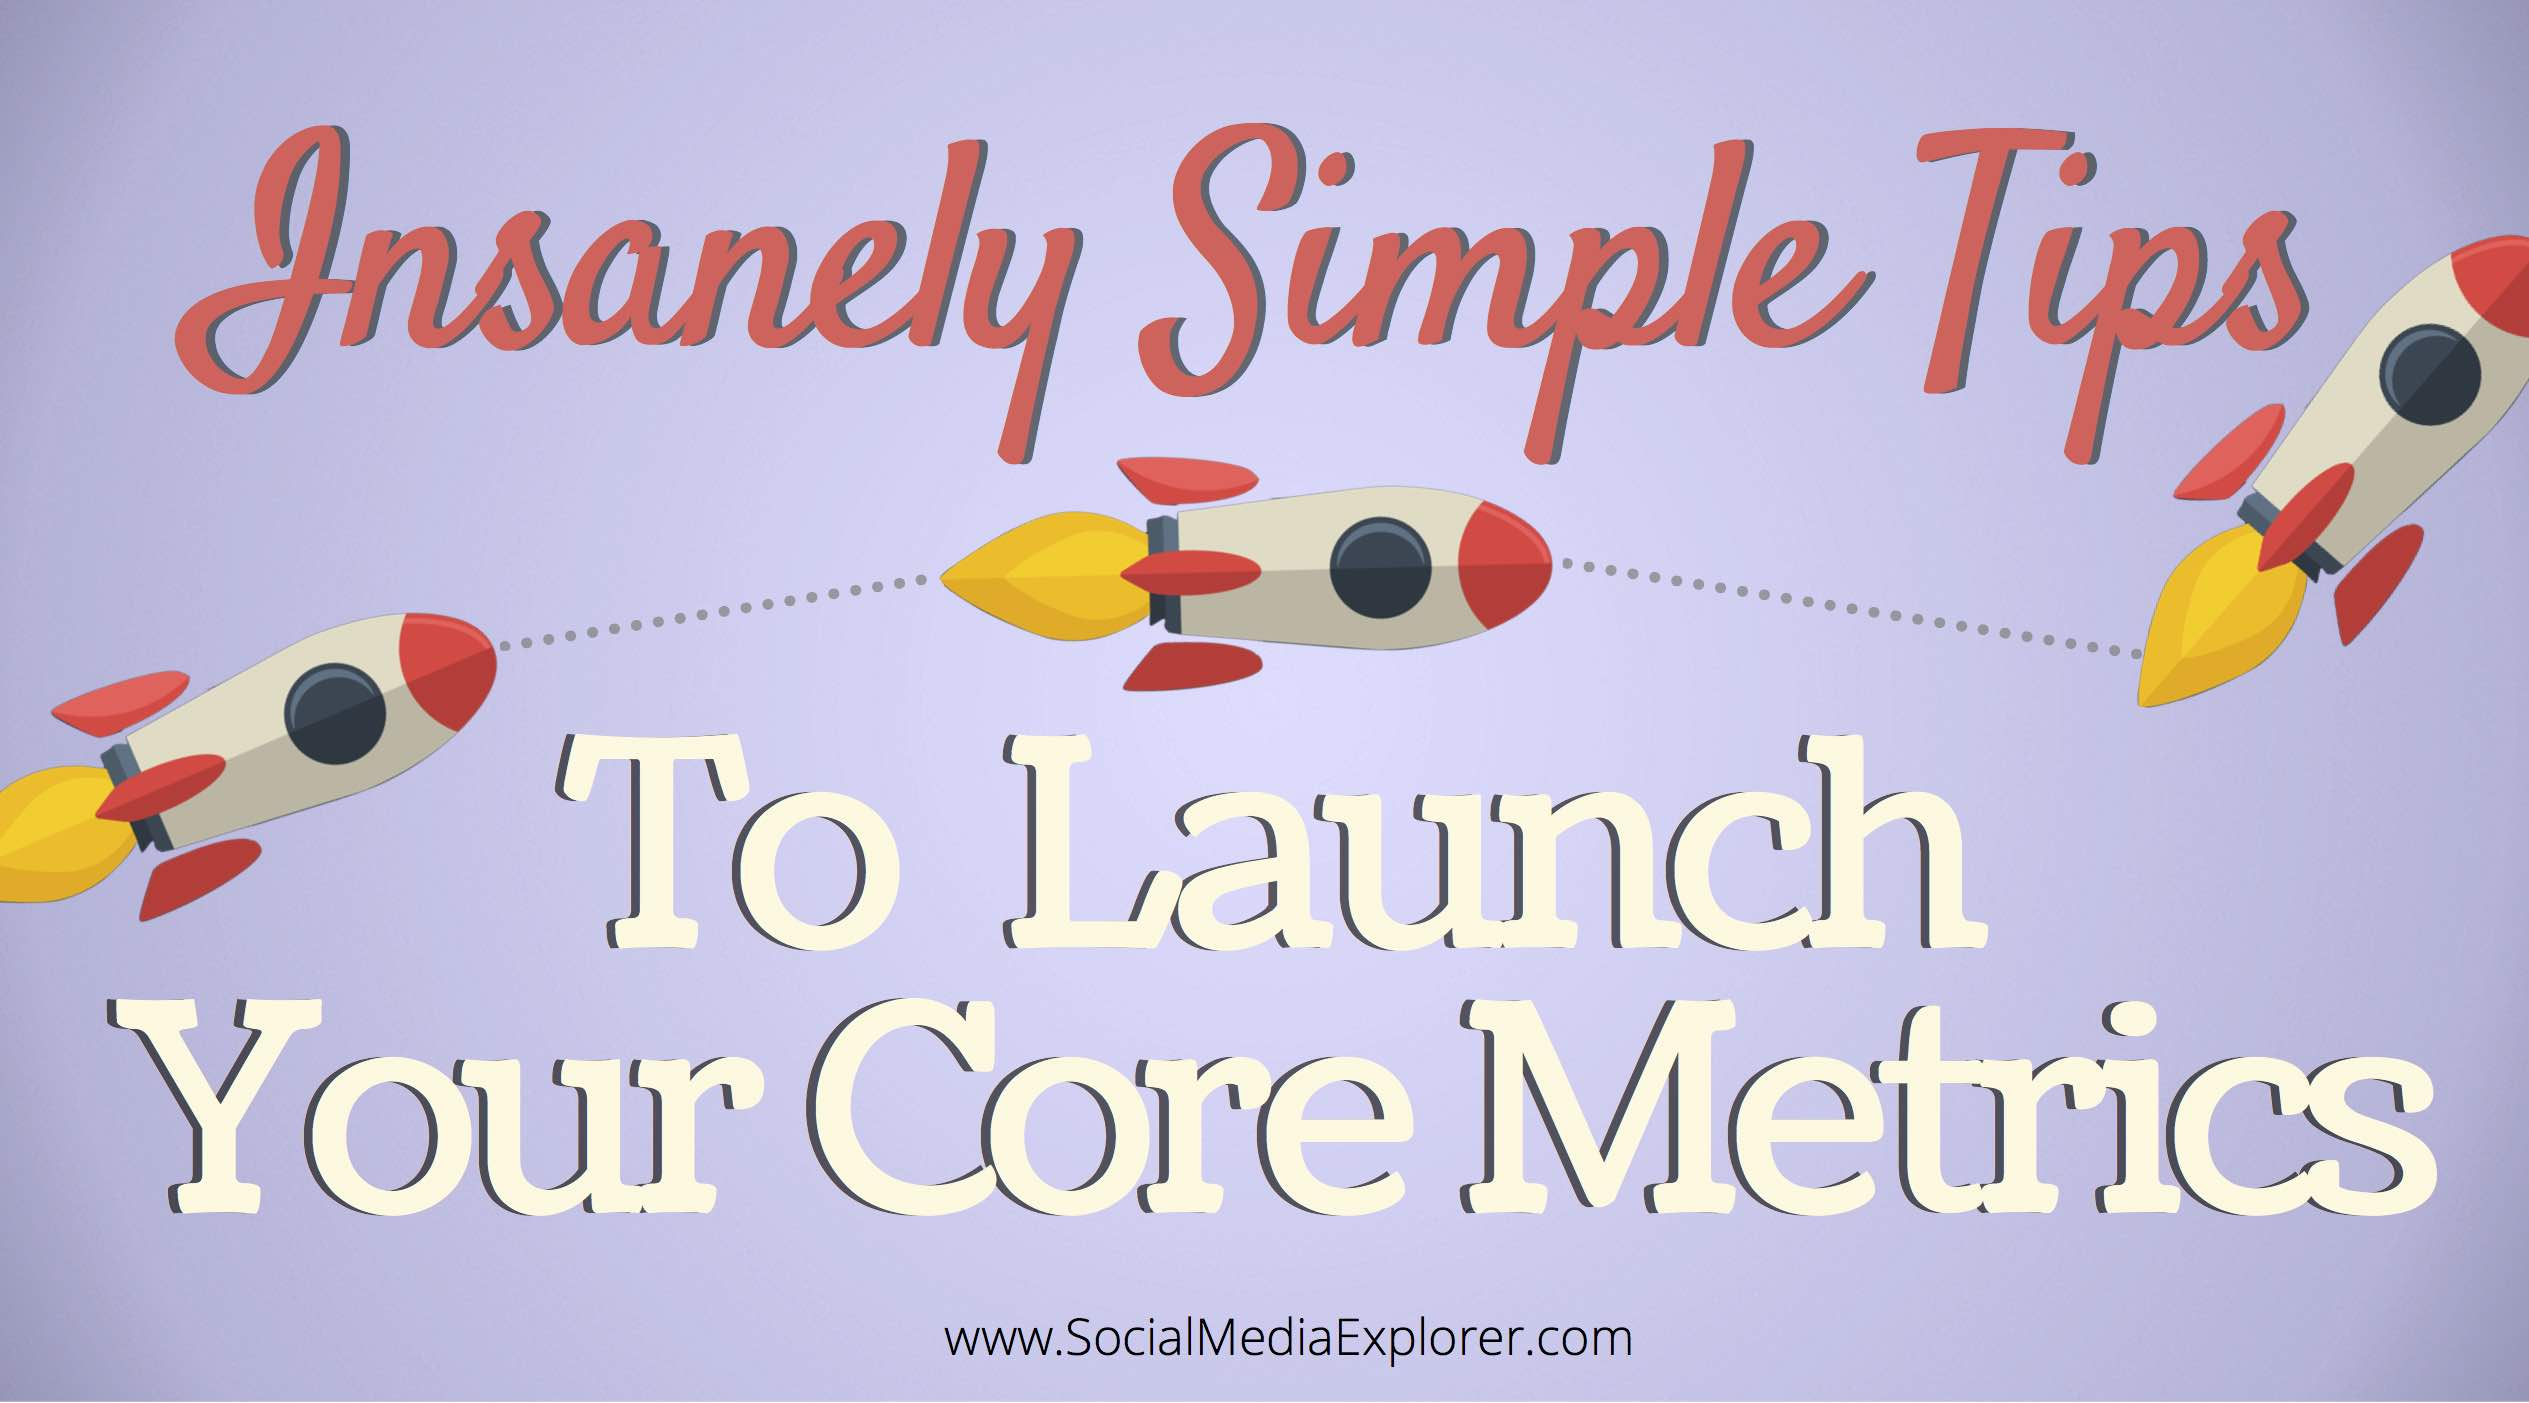 Insanely Simple Tips to Launch Your Core Metrics